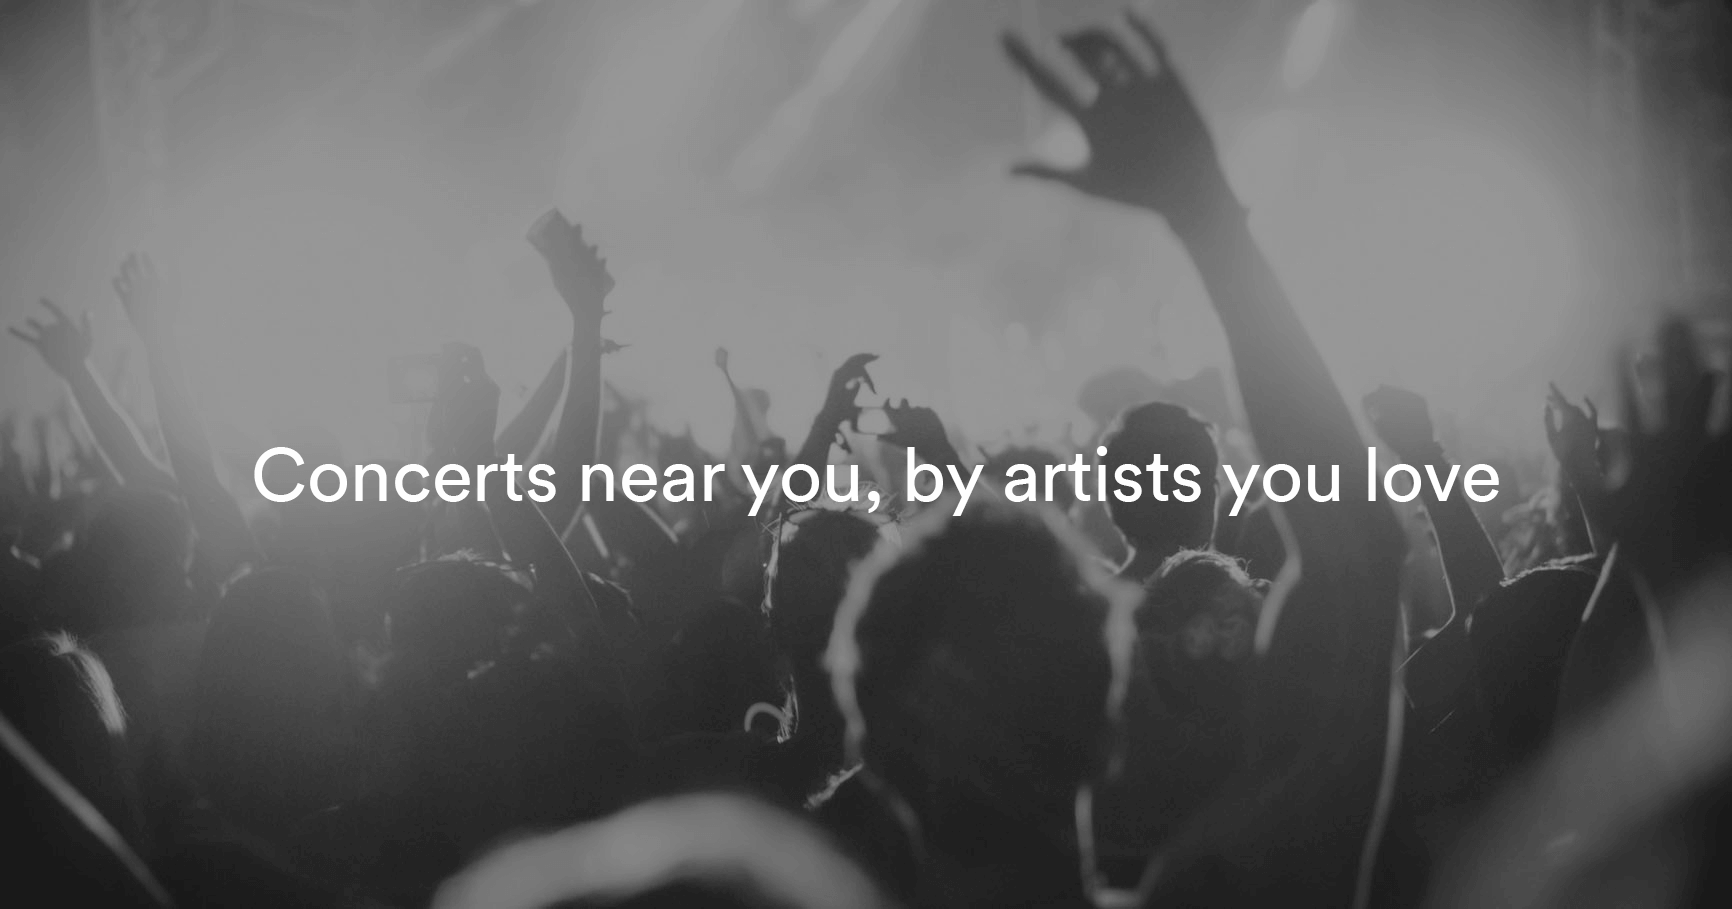 discover concerts near you on spotify